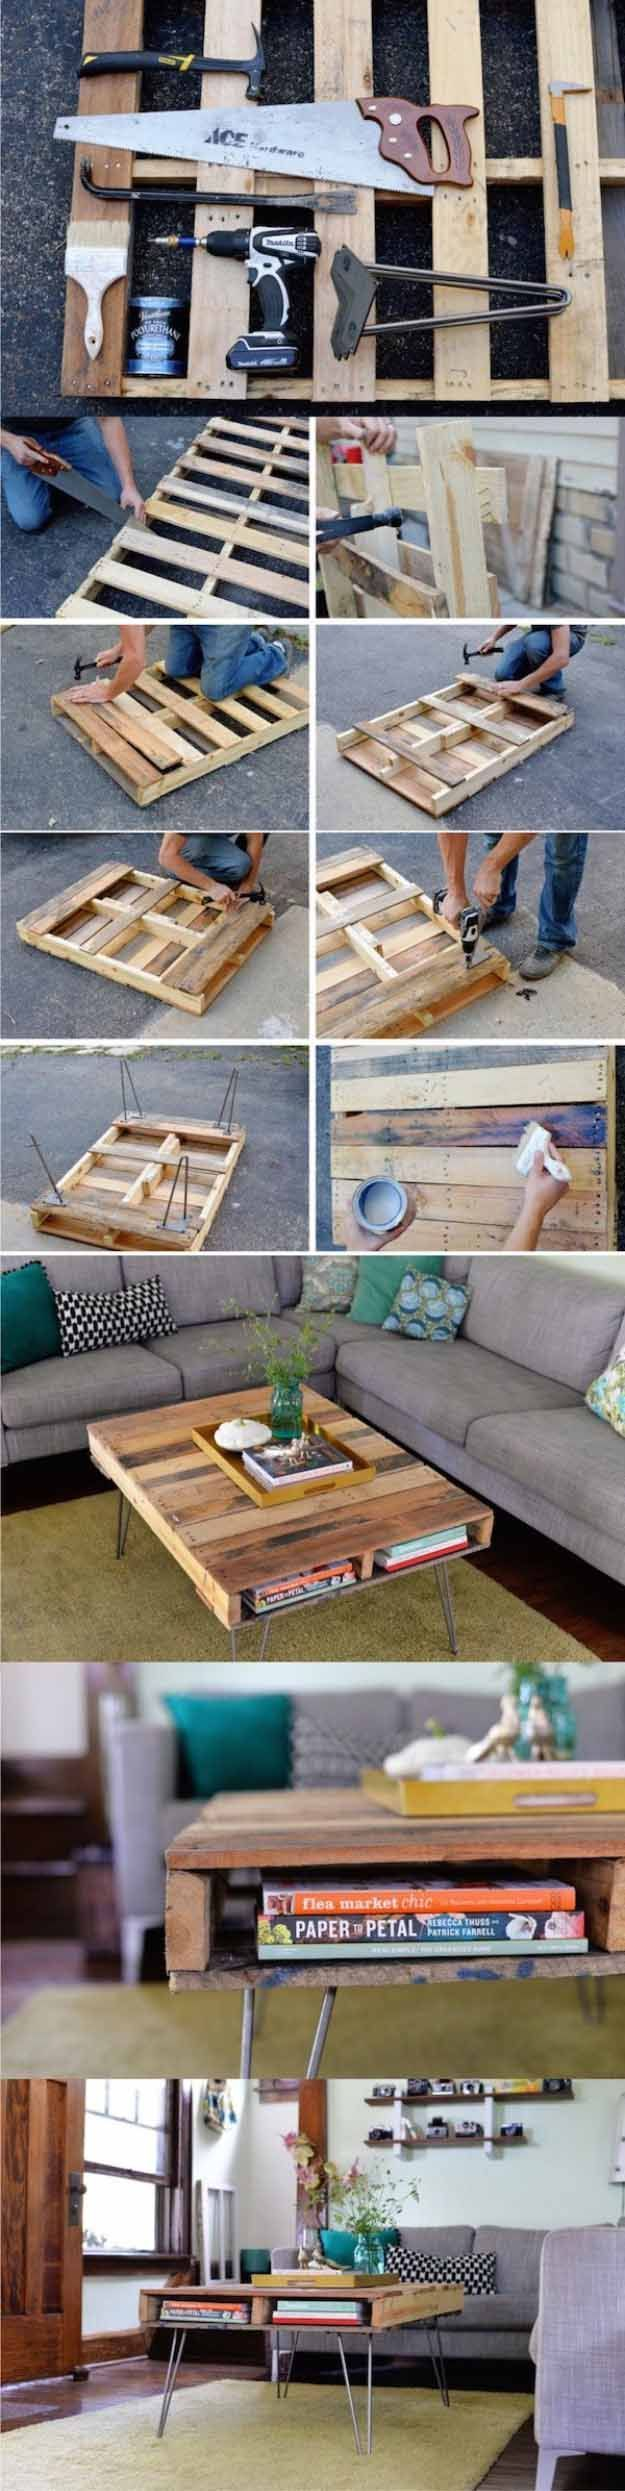 Best Diy Home Decor Projects Ideas On Pinterest Diy Projects